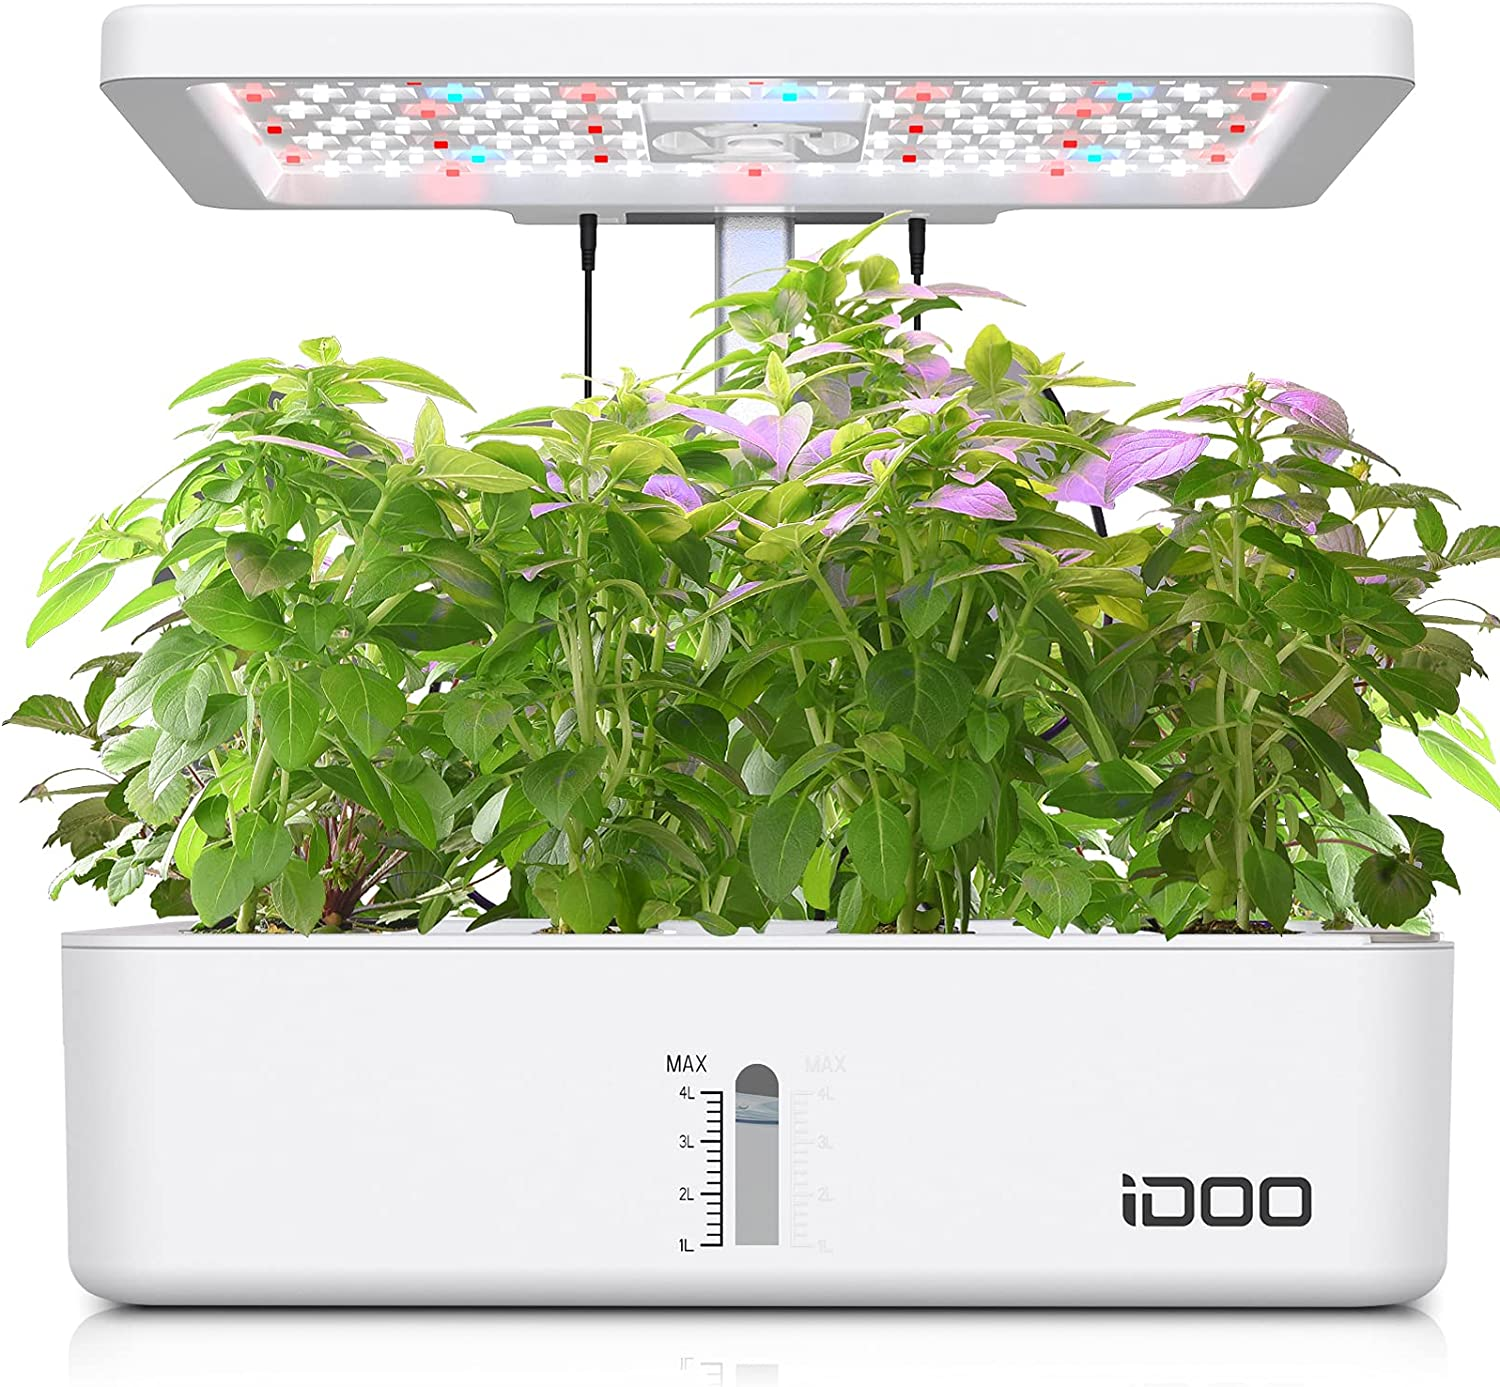 iDOO Indoor Herb Garden, 12Pods Hydroponics Growing System for Kitchen Countertop Bulit-in Fan, Plants Germination Kit with Grow Light, Automatic Timing, Up to 11.02